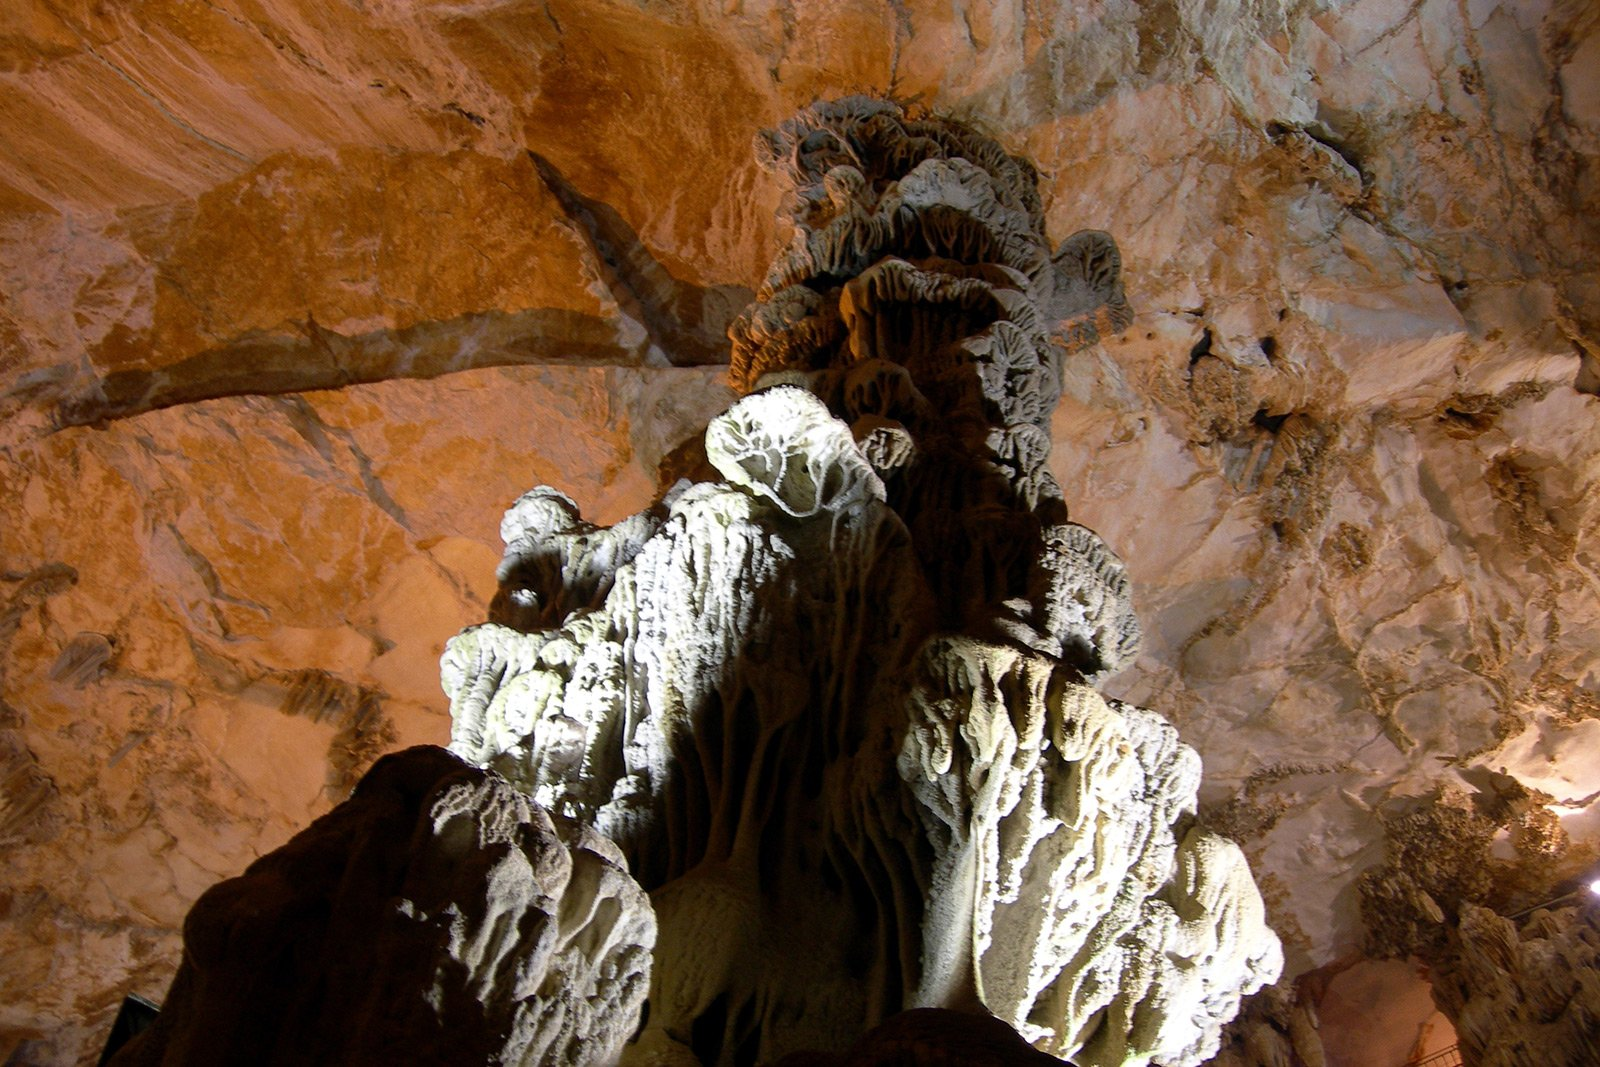 How to see the world's highest stalagnate on Sardinia